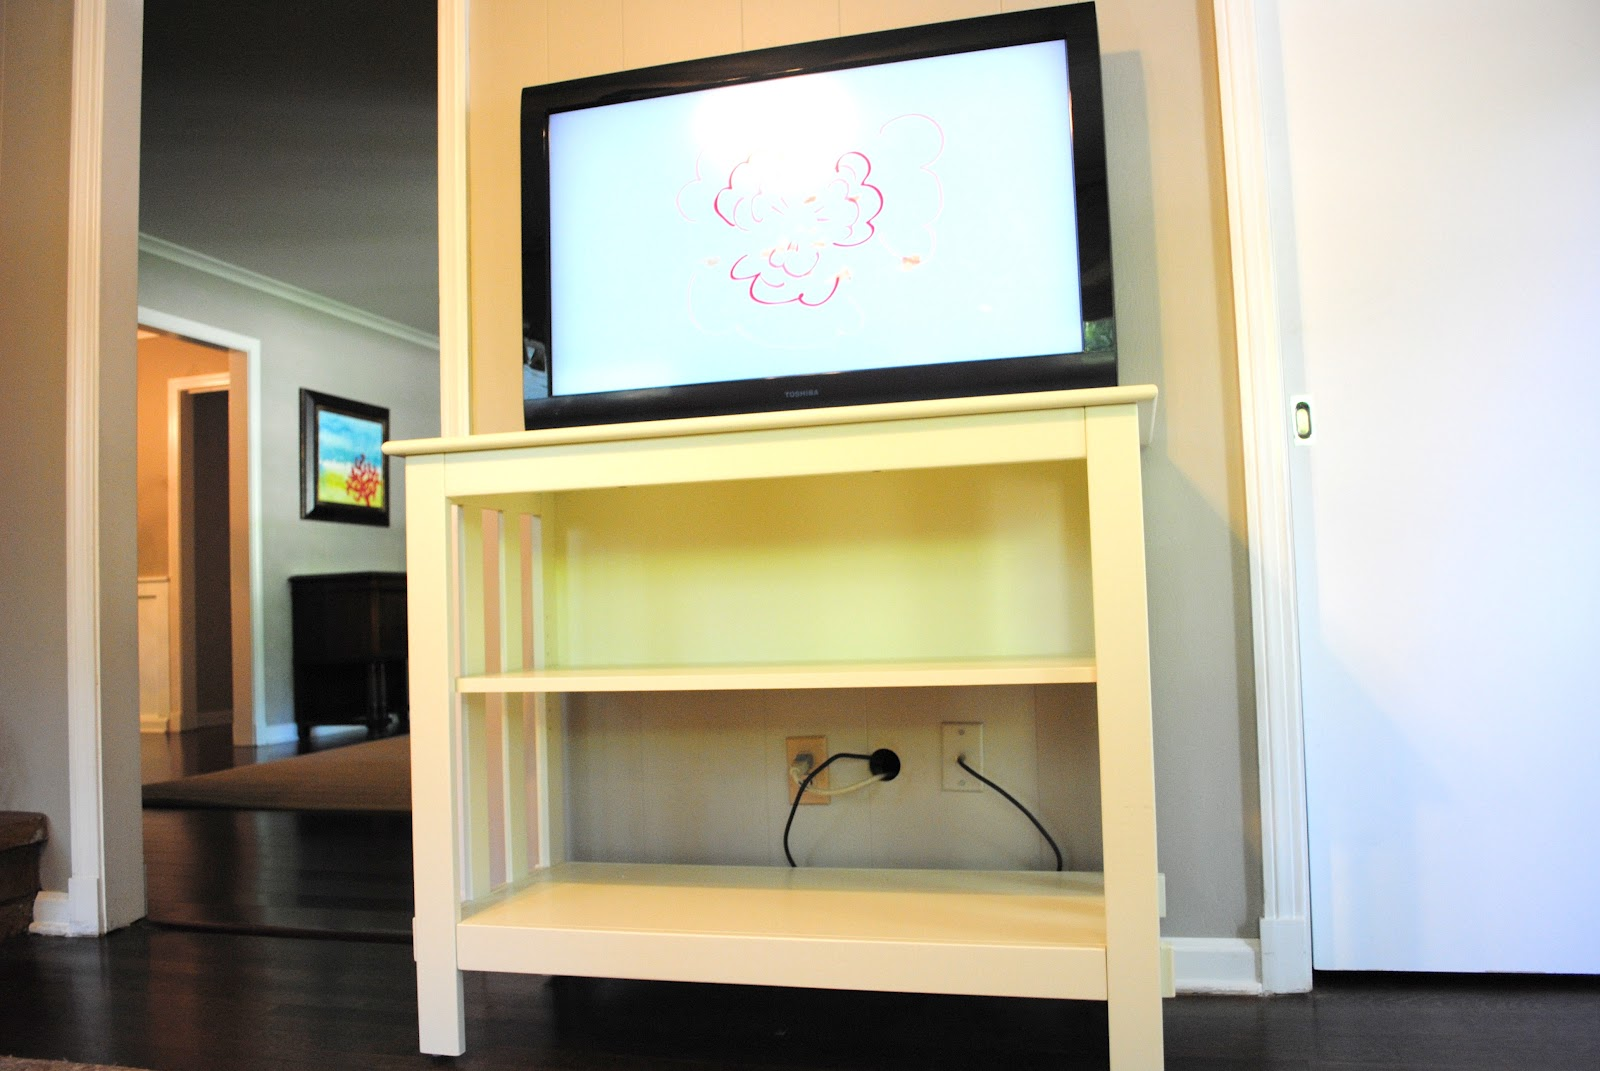 midsouth stagers shelving under a wall mounted tv. Black Bedroom Furniture Sets. Home Design Ideas